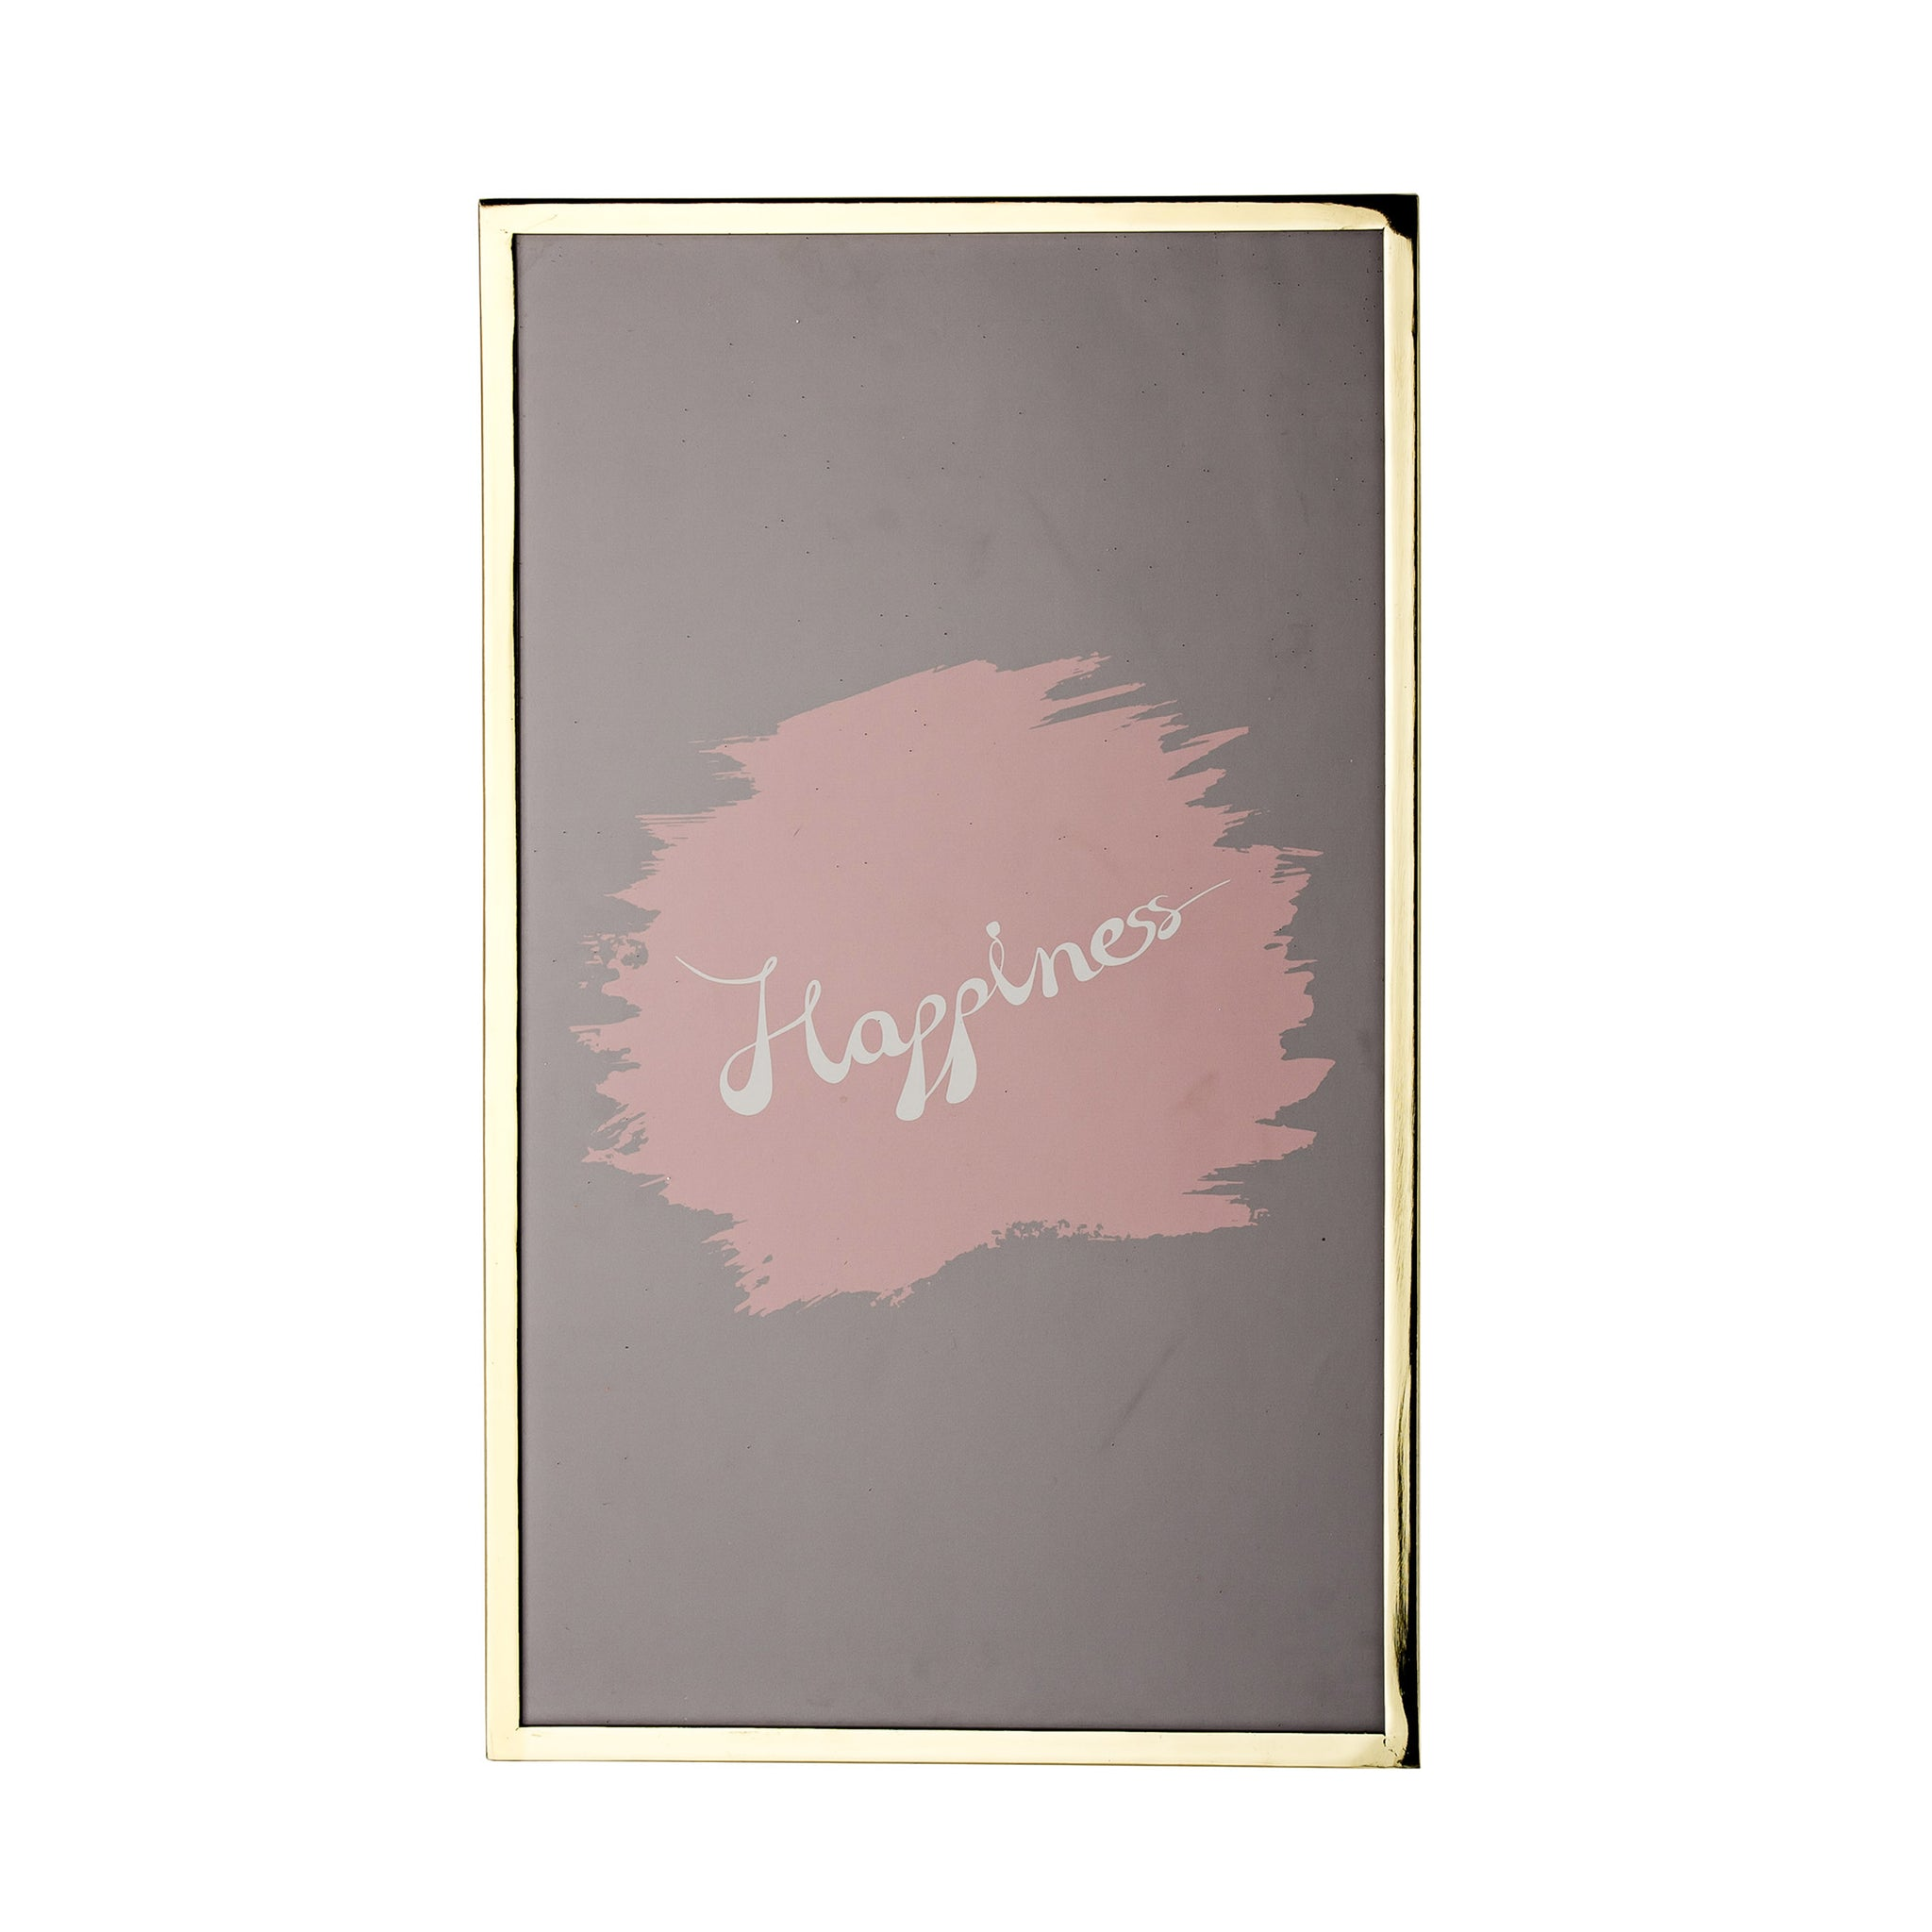 Metal Framed Happiness Wall Decor